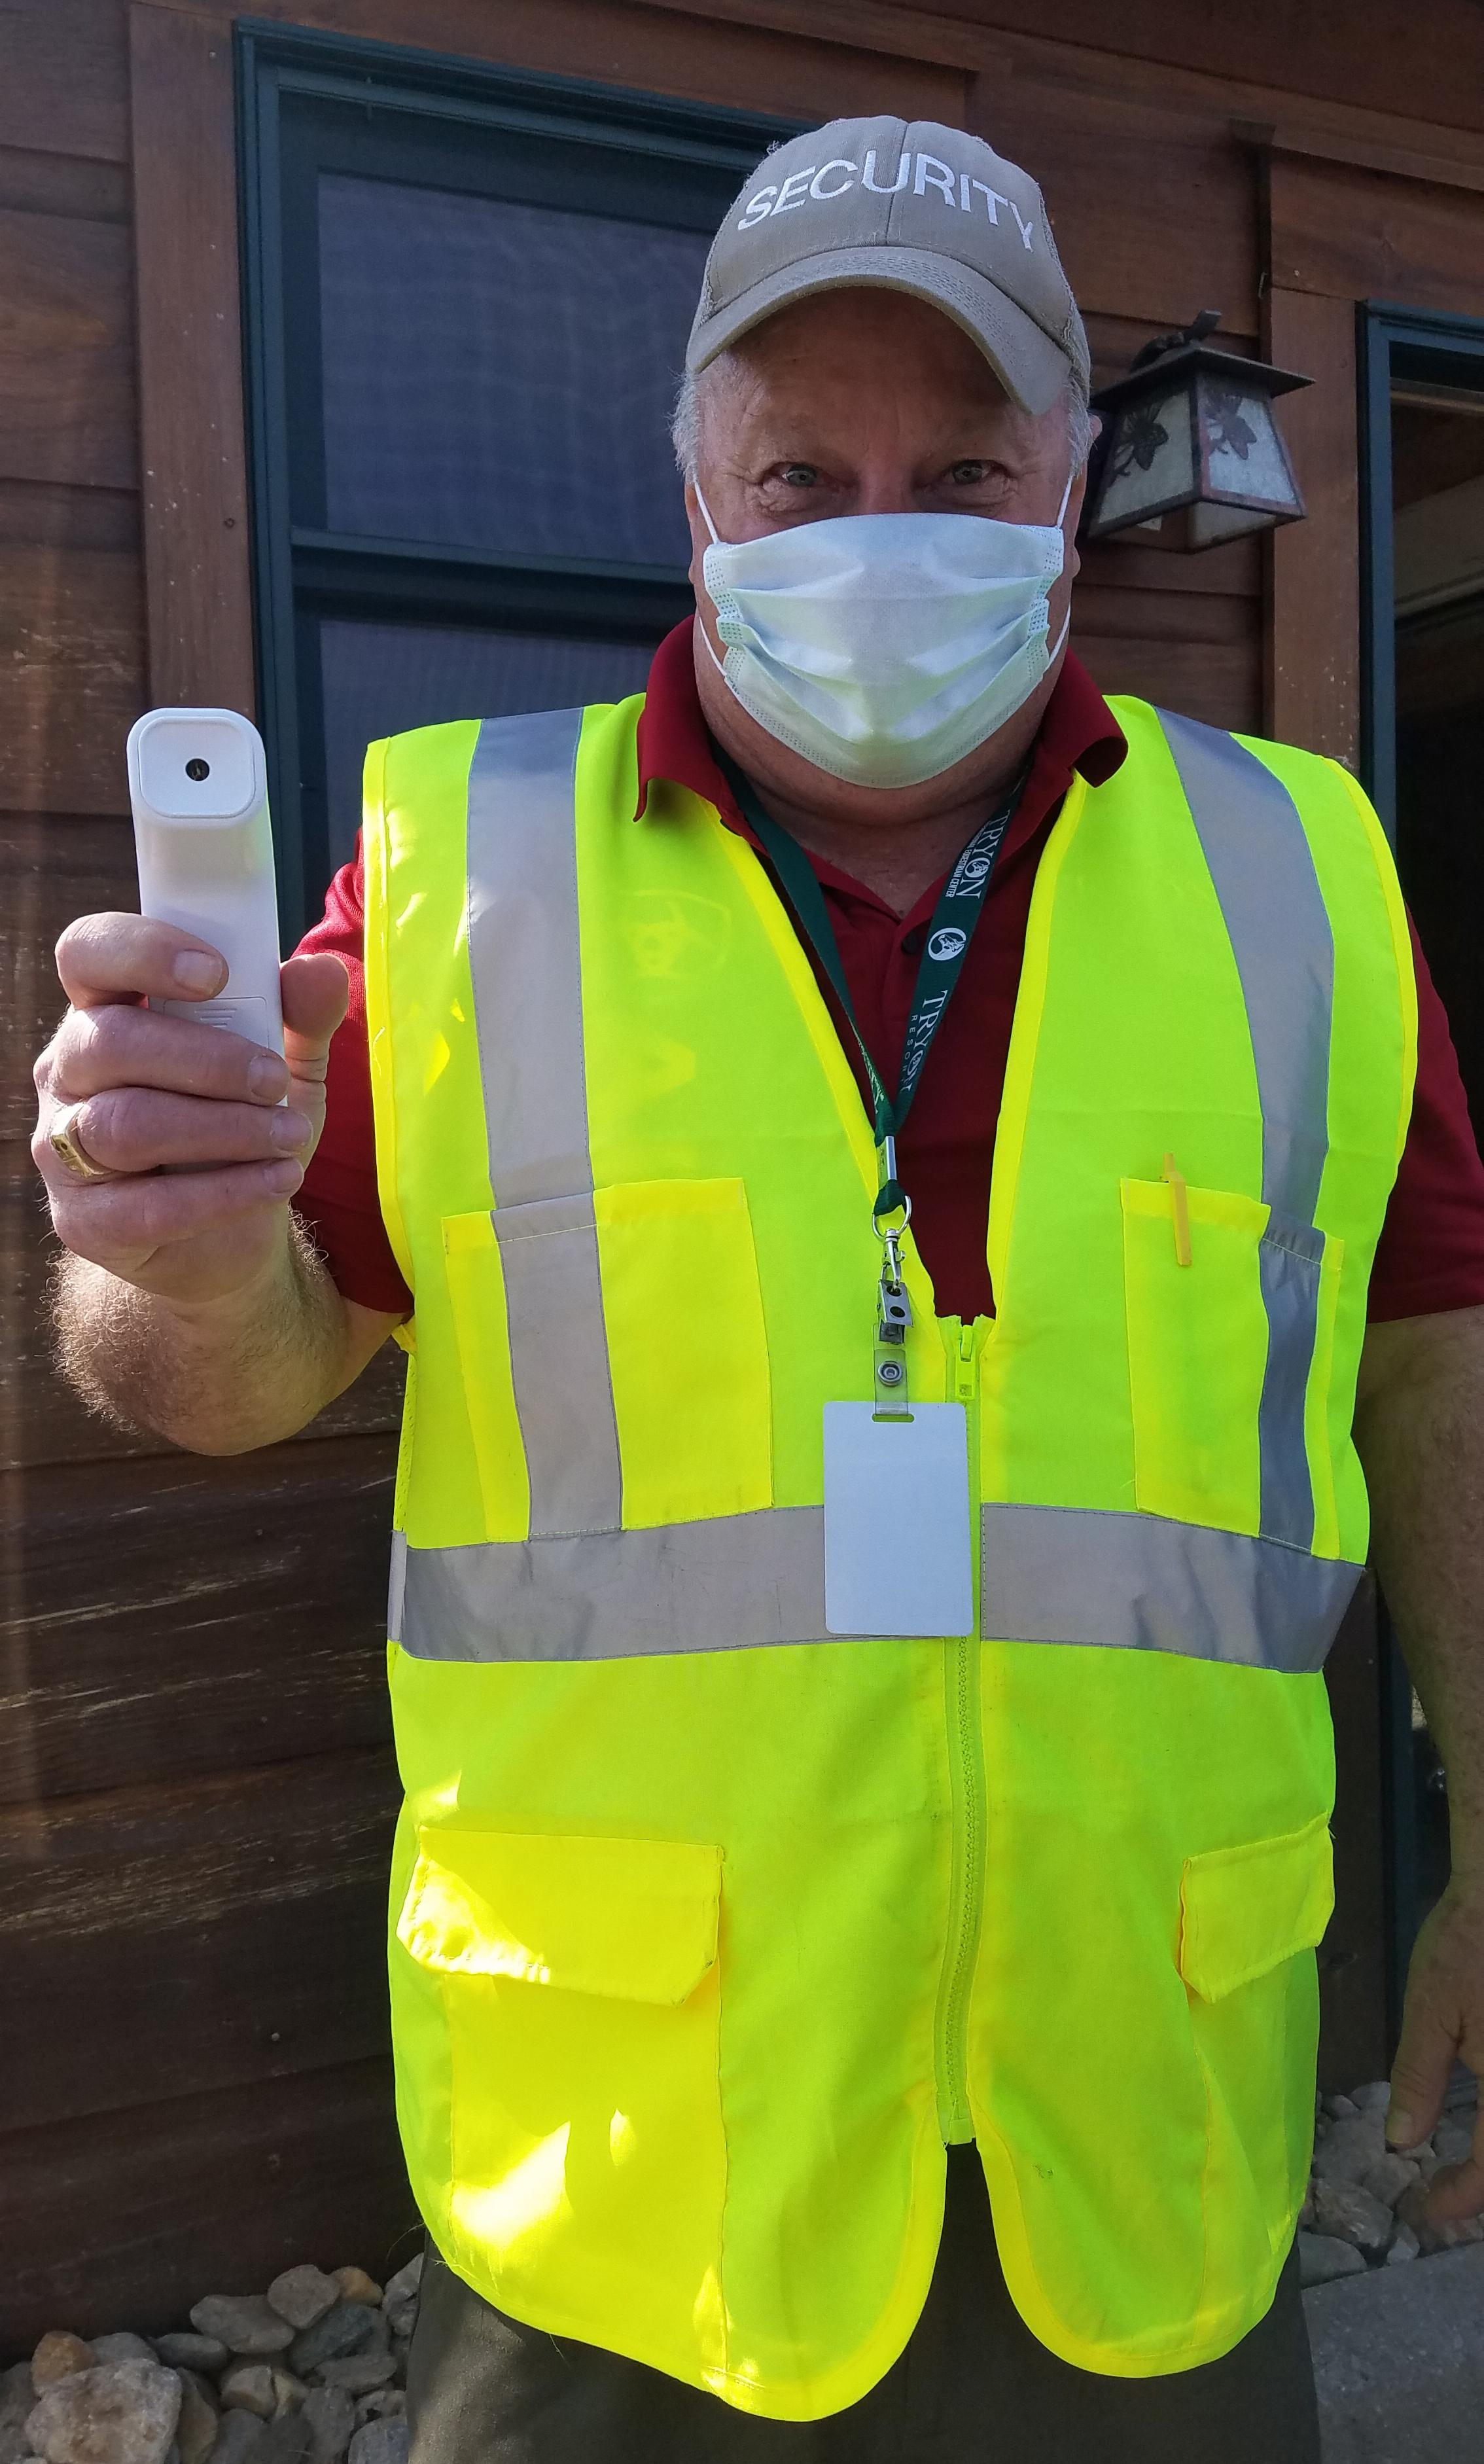 Tryon International Equestrian Center staff member ready to take temperatures upon entry.